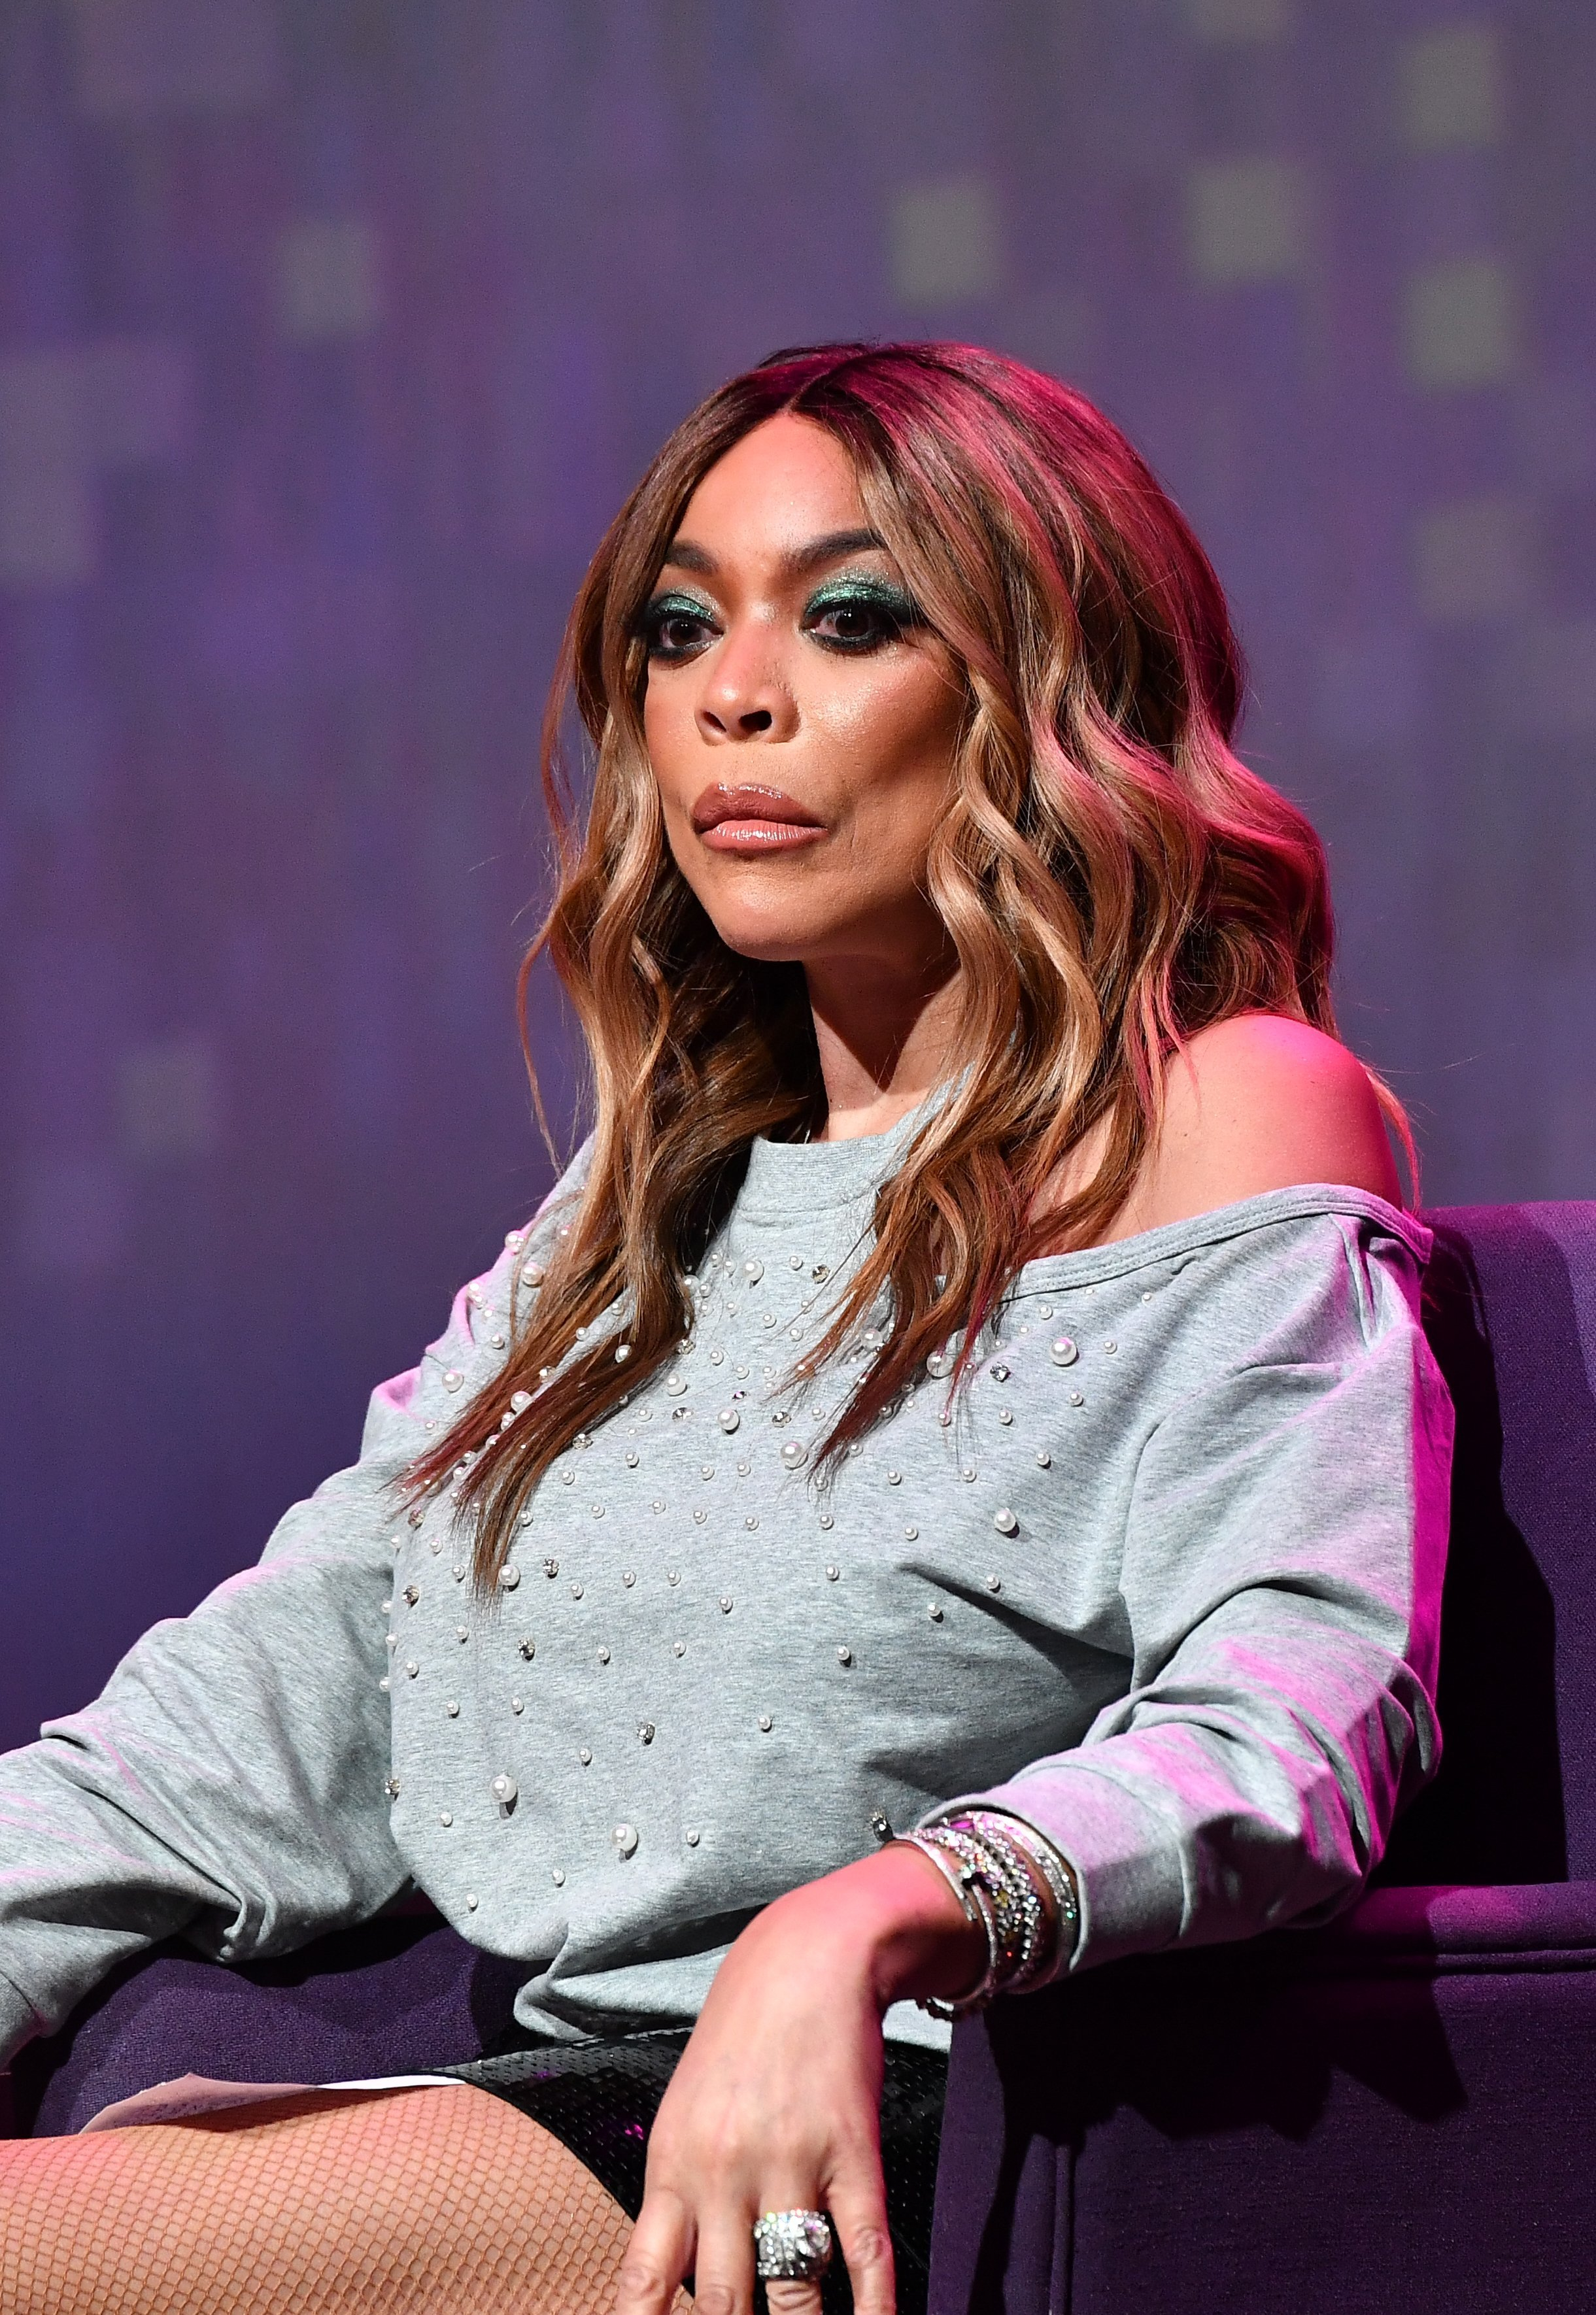 Wendy Williams at the celebration of 10 years of 'The Wendy Williams Show' on Aug. 16, 2018 in Georgia | Photo: Getty Images